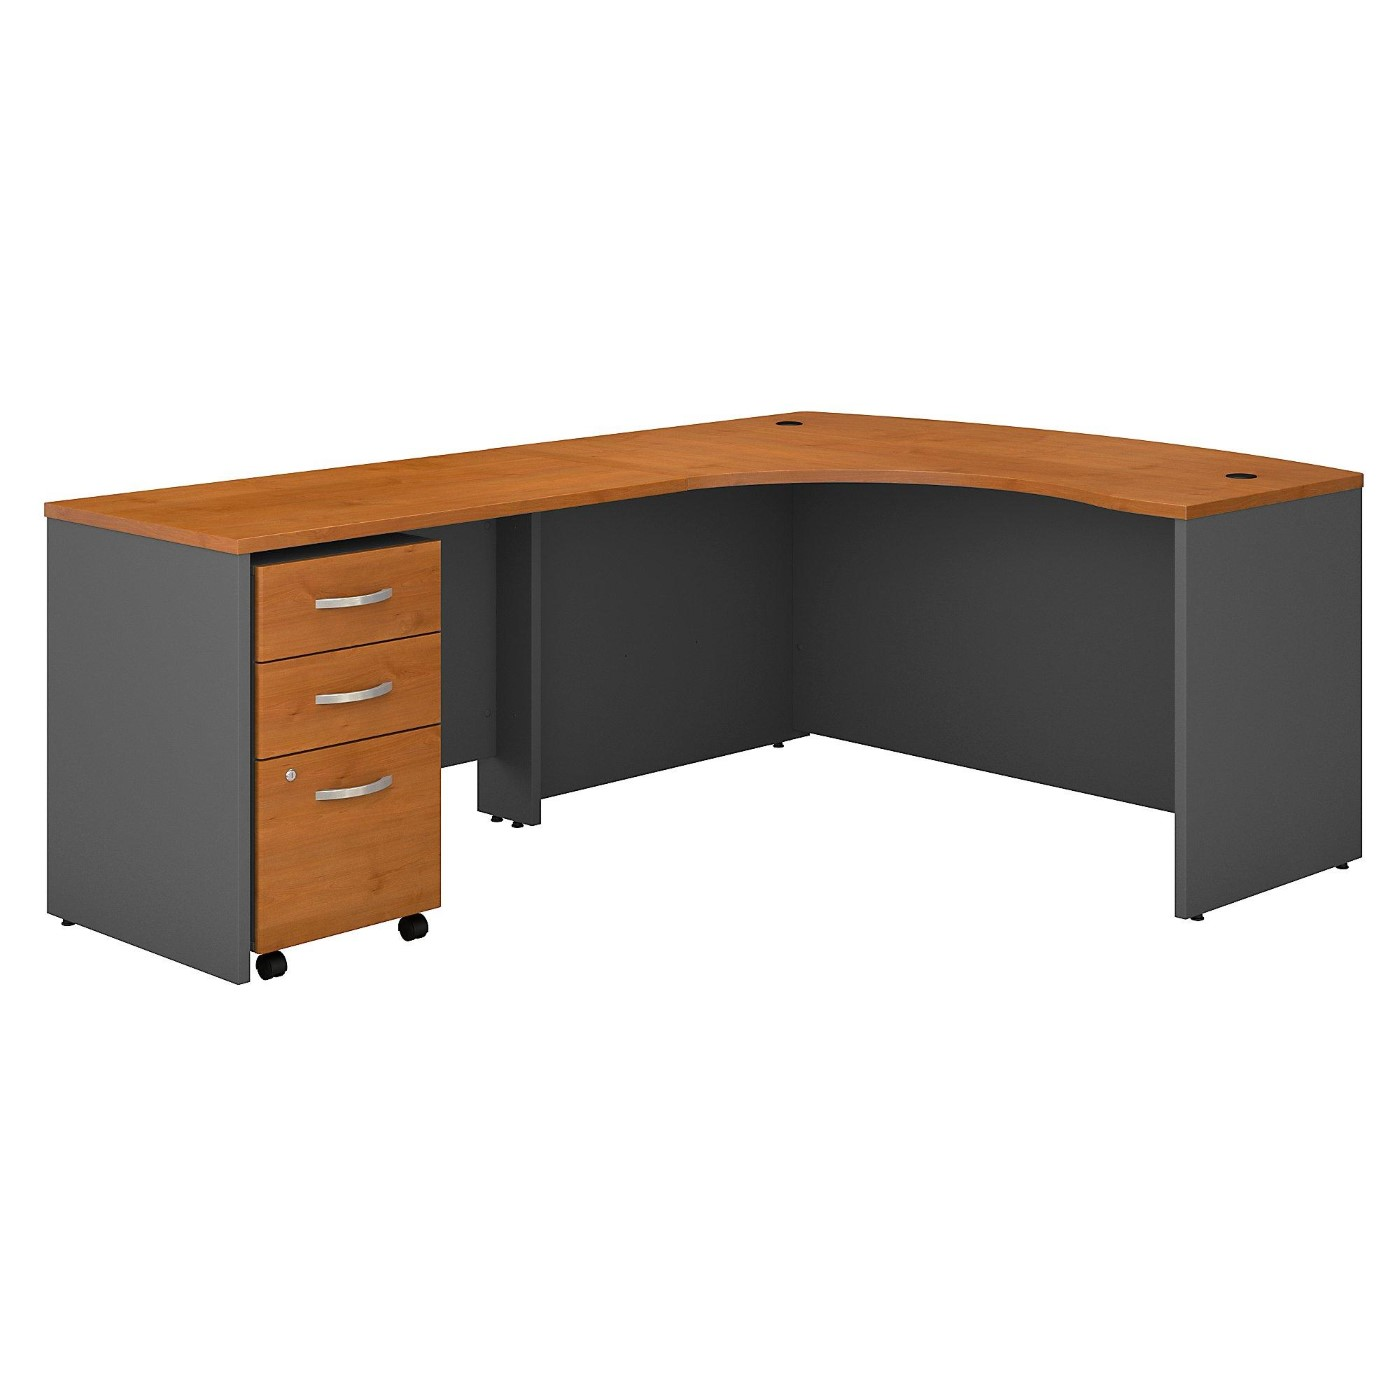 <font color=#c60><b>BUSH BUSINESS FURNITURE SERIES C RIGHT HANDED L SHAPED DESK WITH MOBILE FILE CABINET. FREE SHIPPING</font></b></font></b>